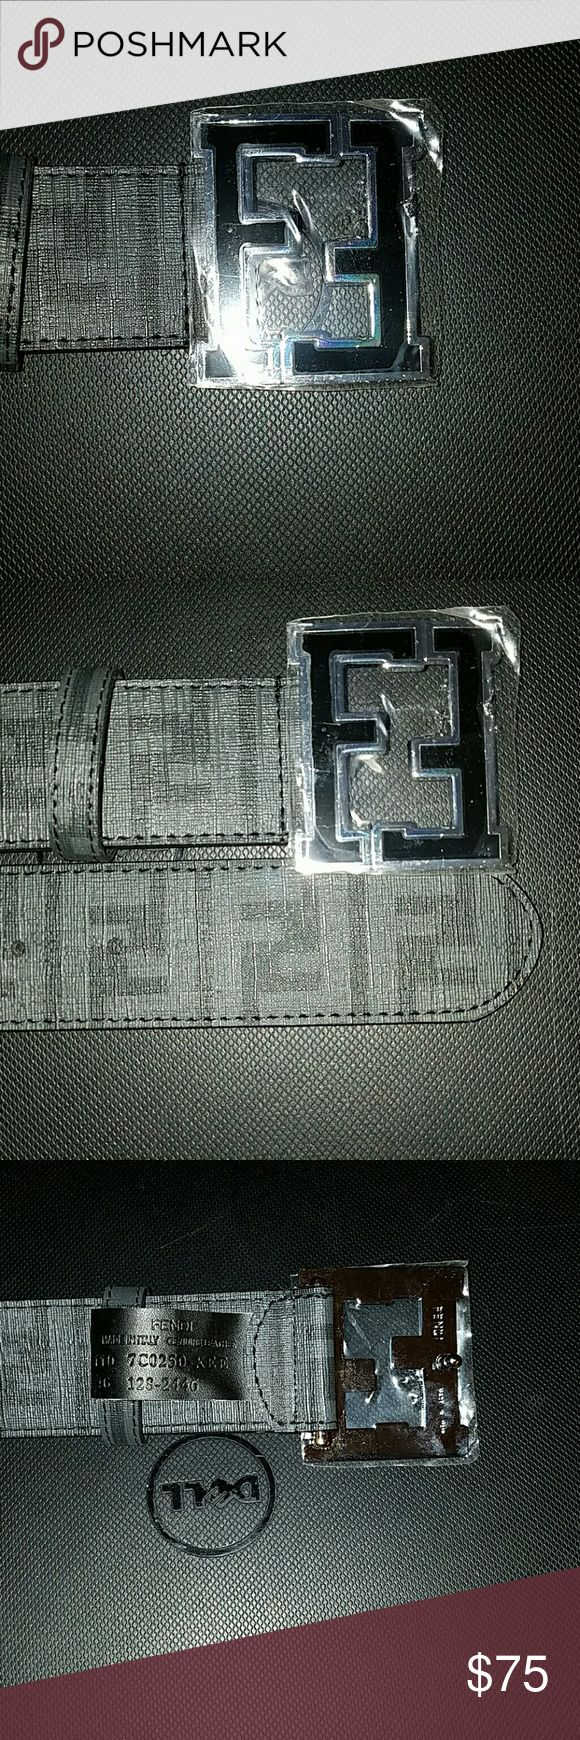 Fendi belt Men's Fendi FF College Logo Zucca Leather Belt in Black with Gray FF logo  size 34-36 but can be sized up to a 38 or sized down to a sz 30 Fendi Accessories Belts